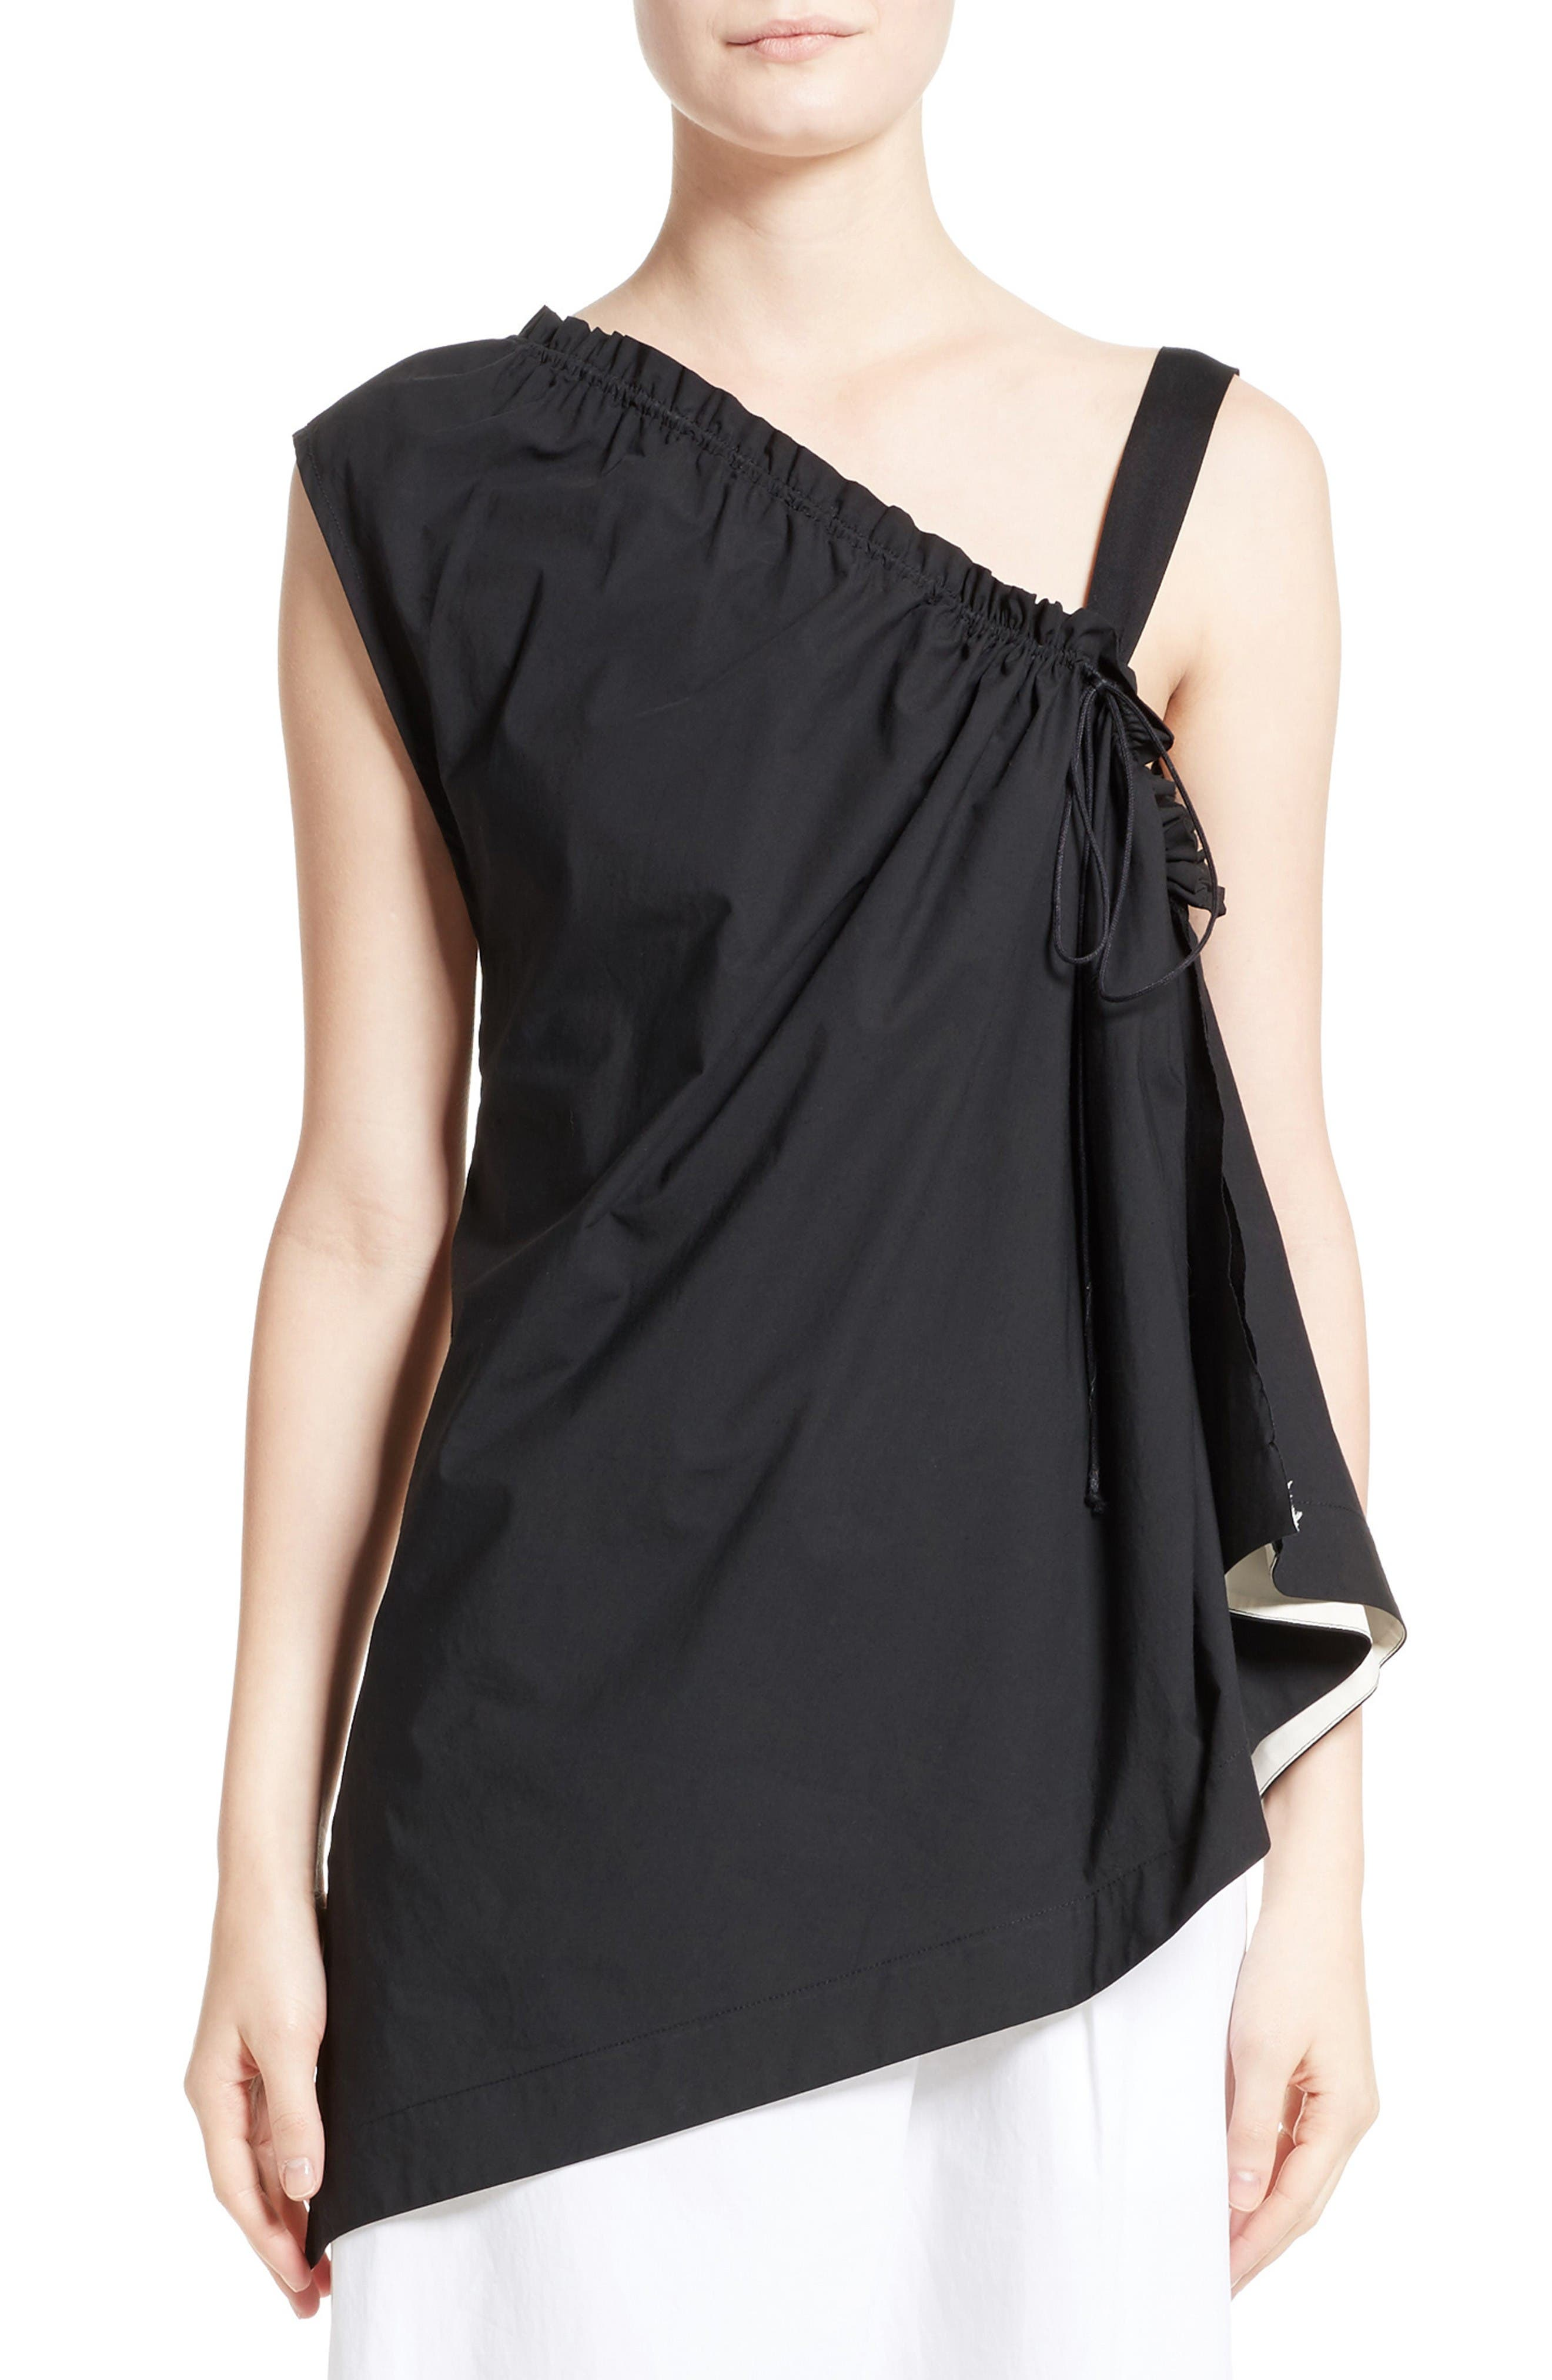 Alternate Image 1 Selected - Colovos Ruched Single Strap Top